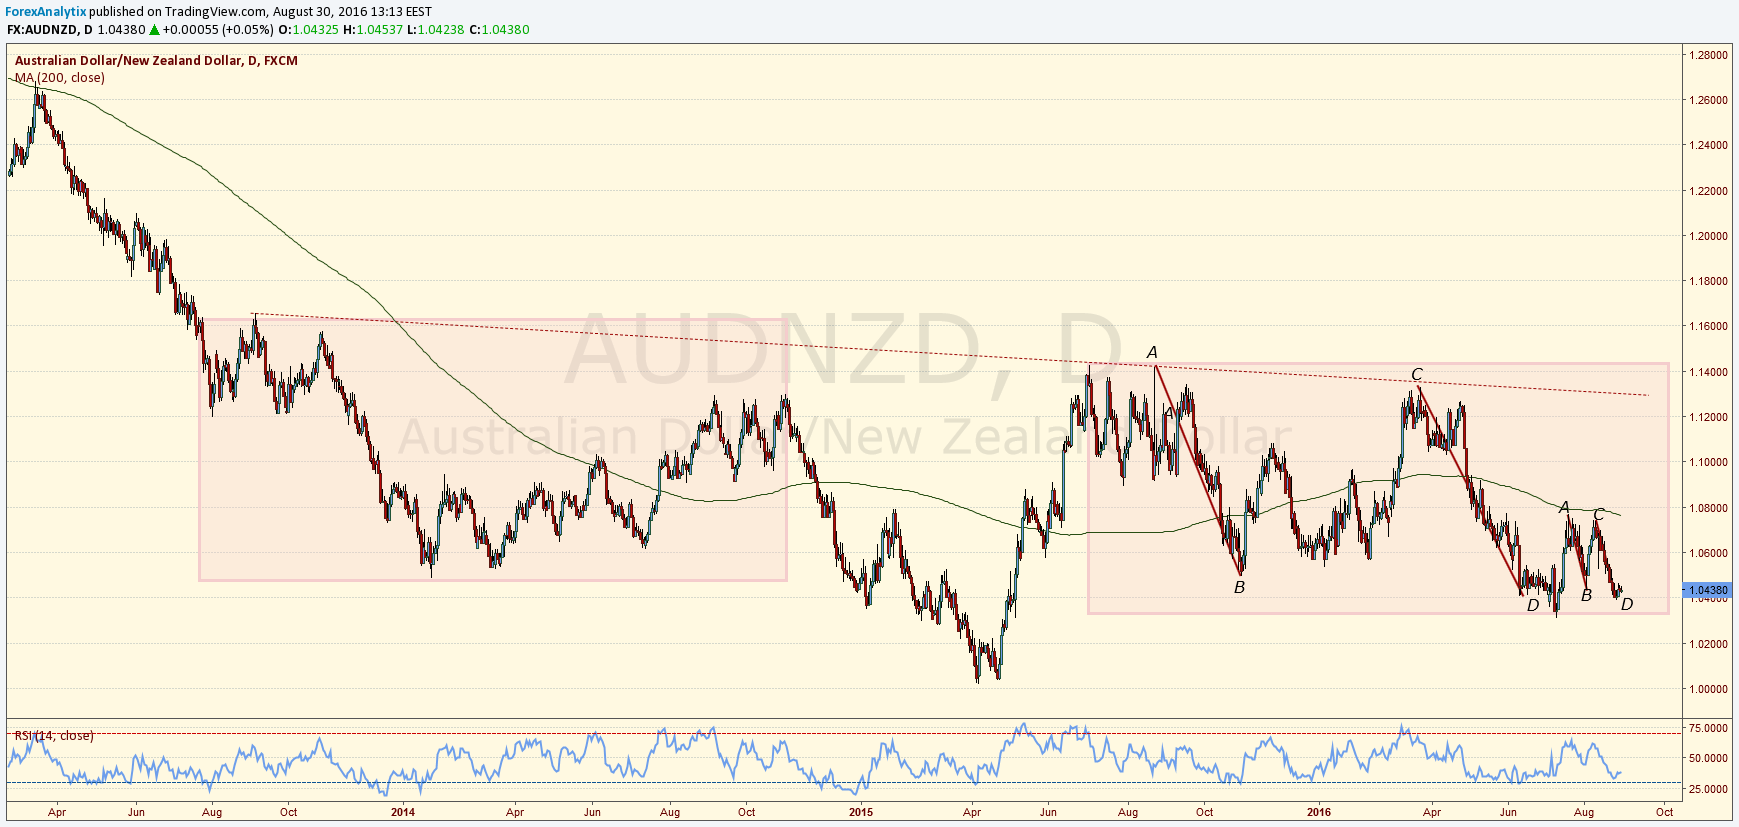 http://www.forexanalytix.com/blog/wp-content/uploads/2016/09/AUDNZD-daily-Blake.png